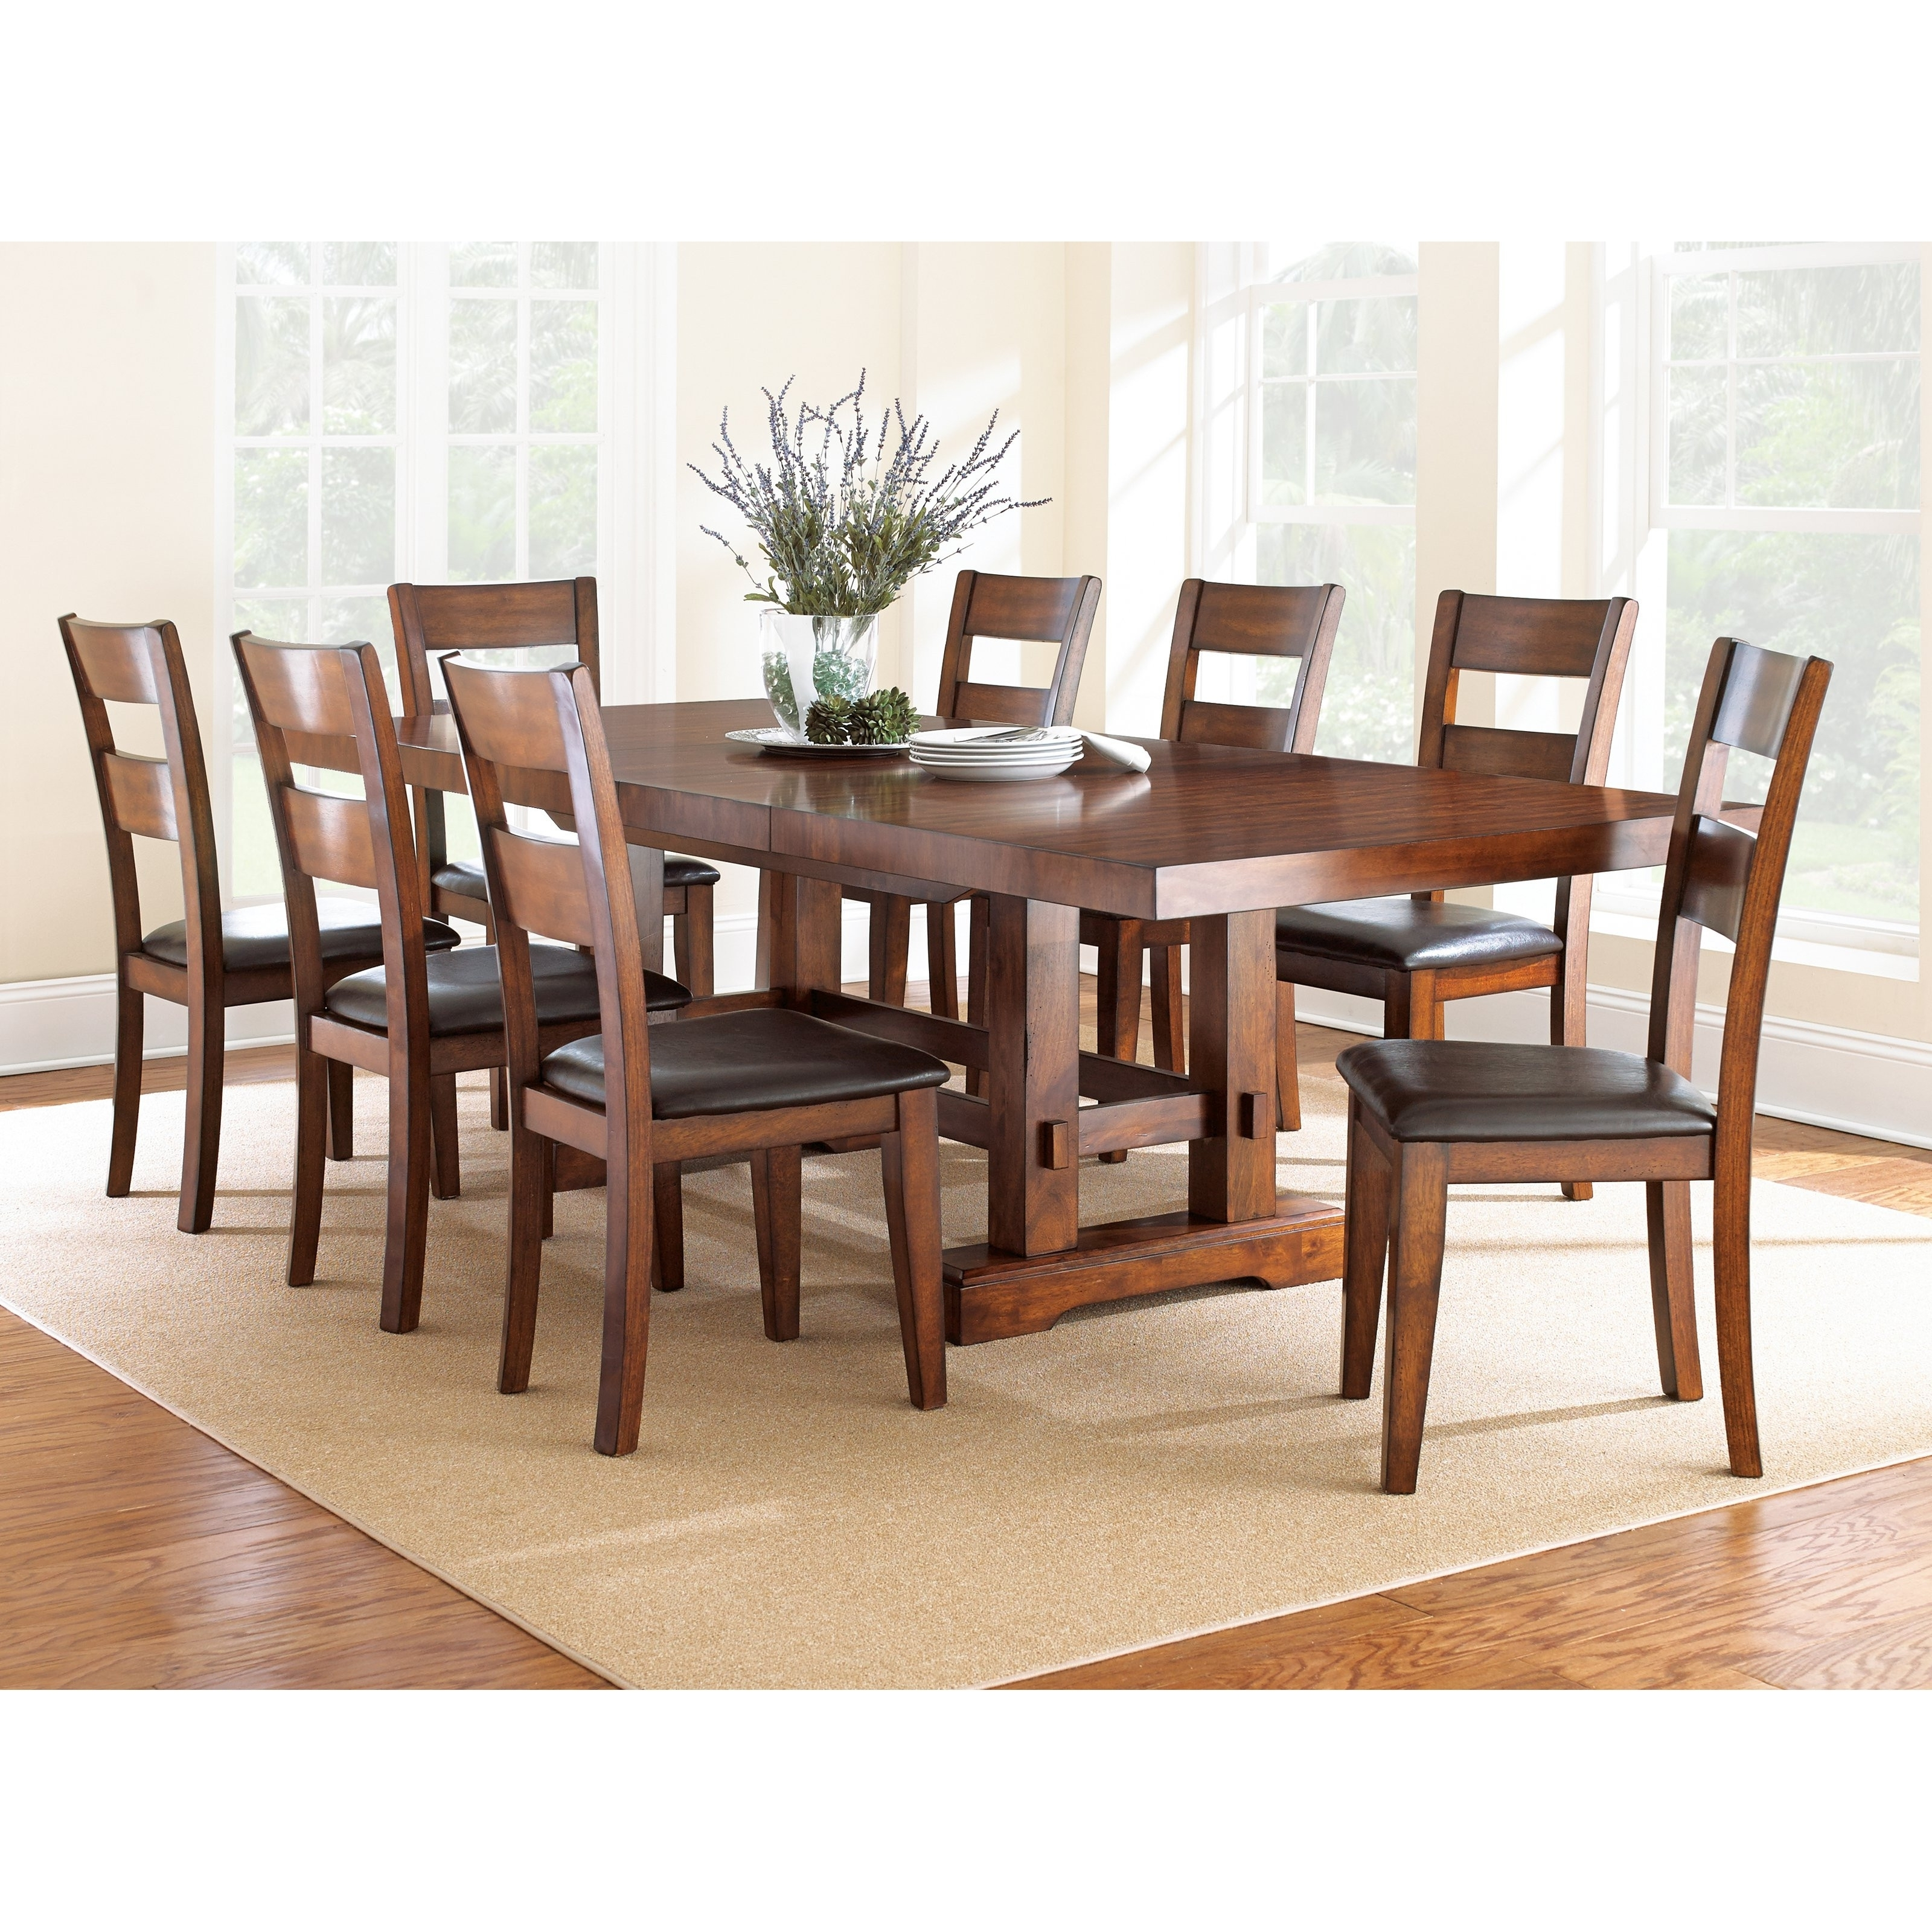 24 Montreal regarding 8 Chairs Dining Tables